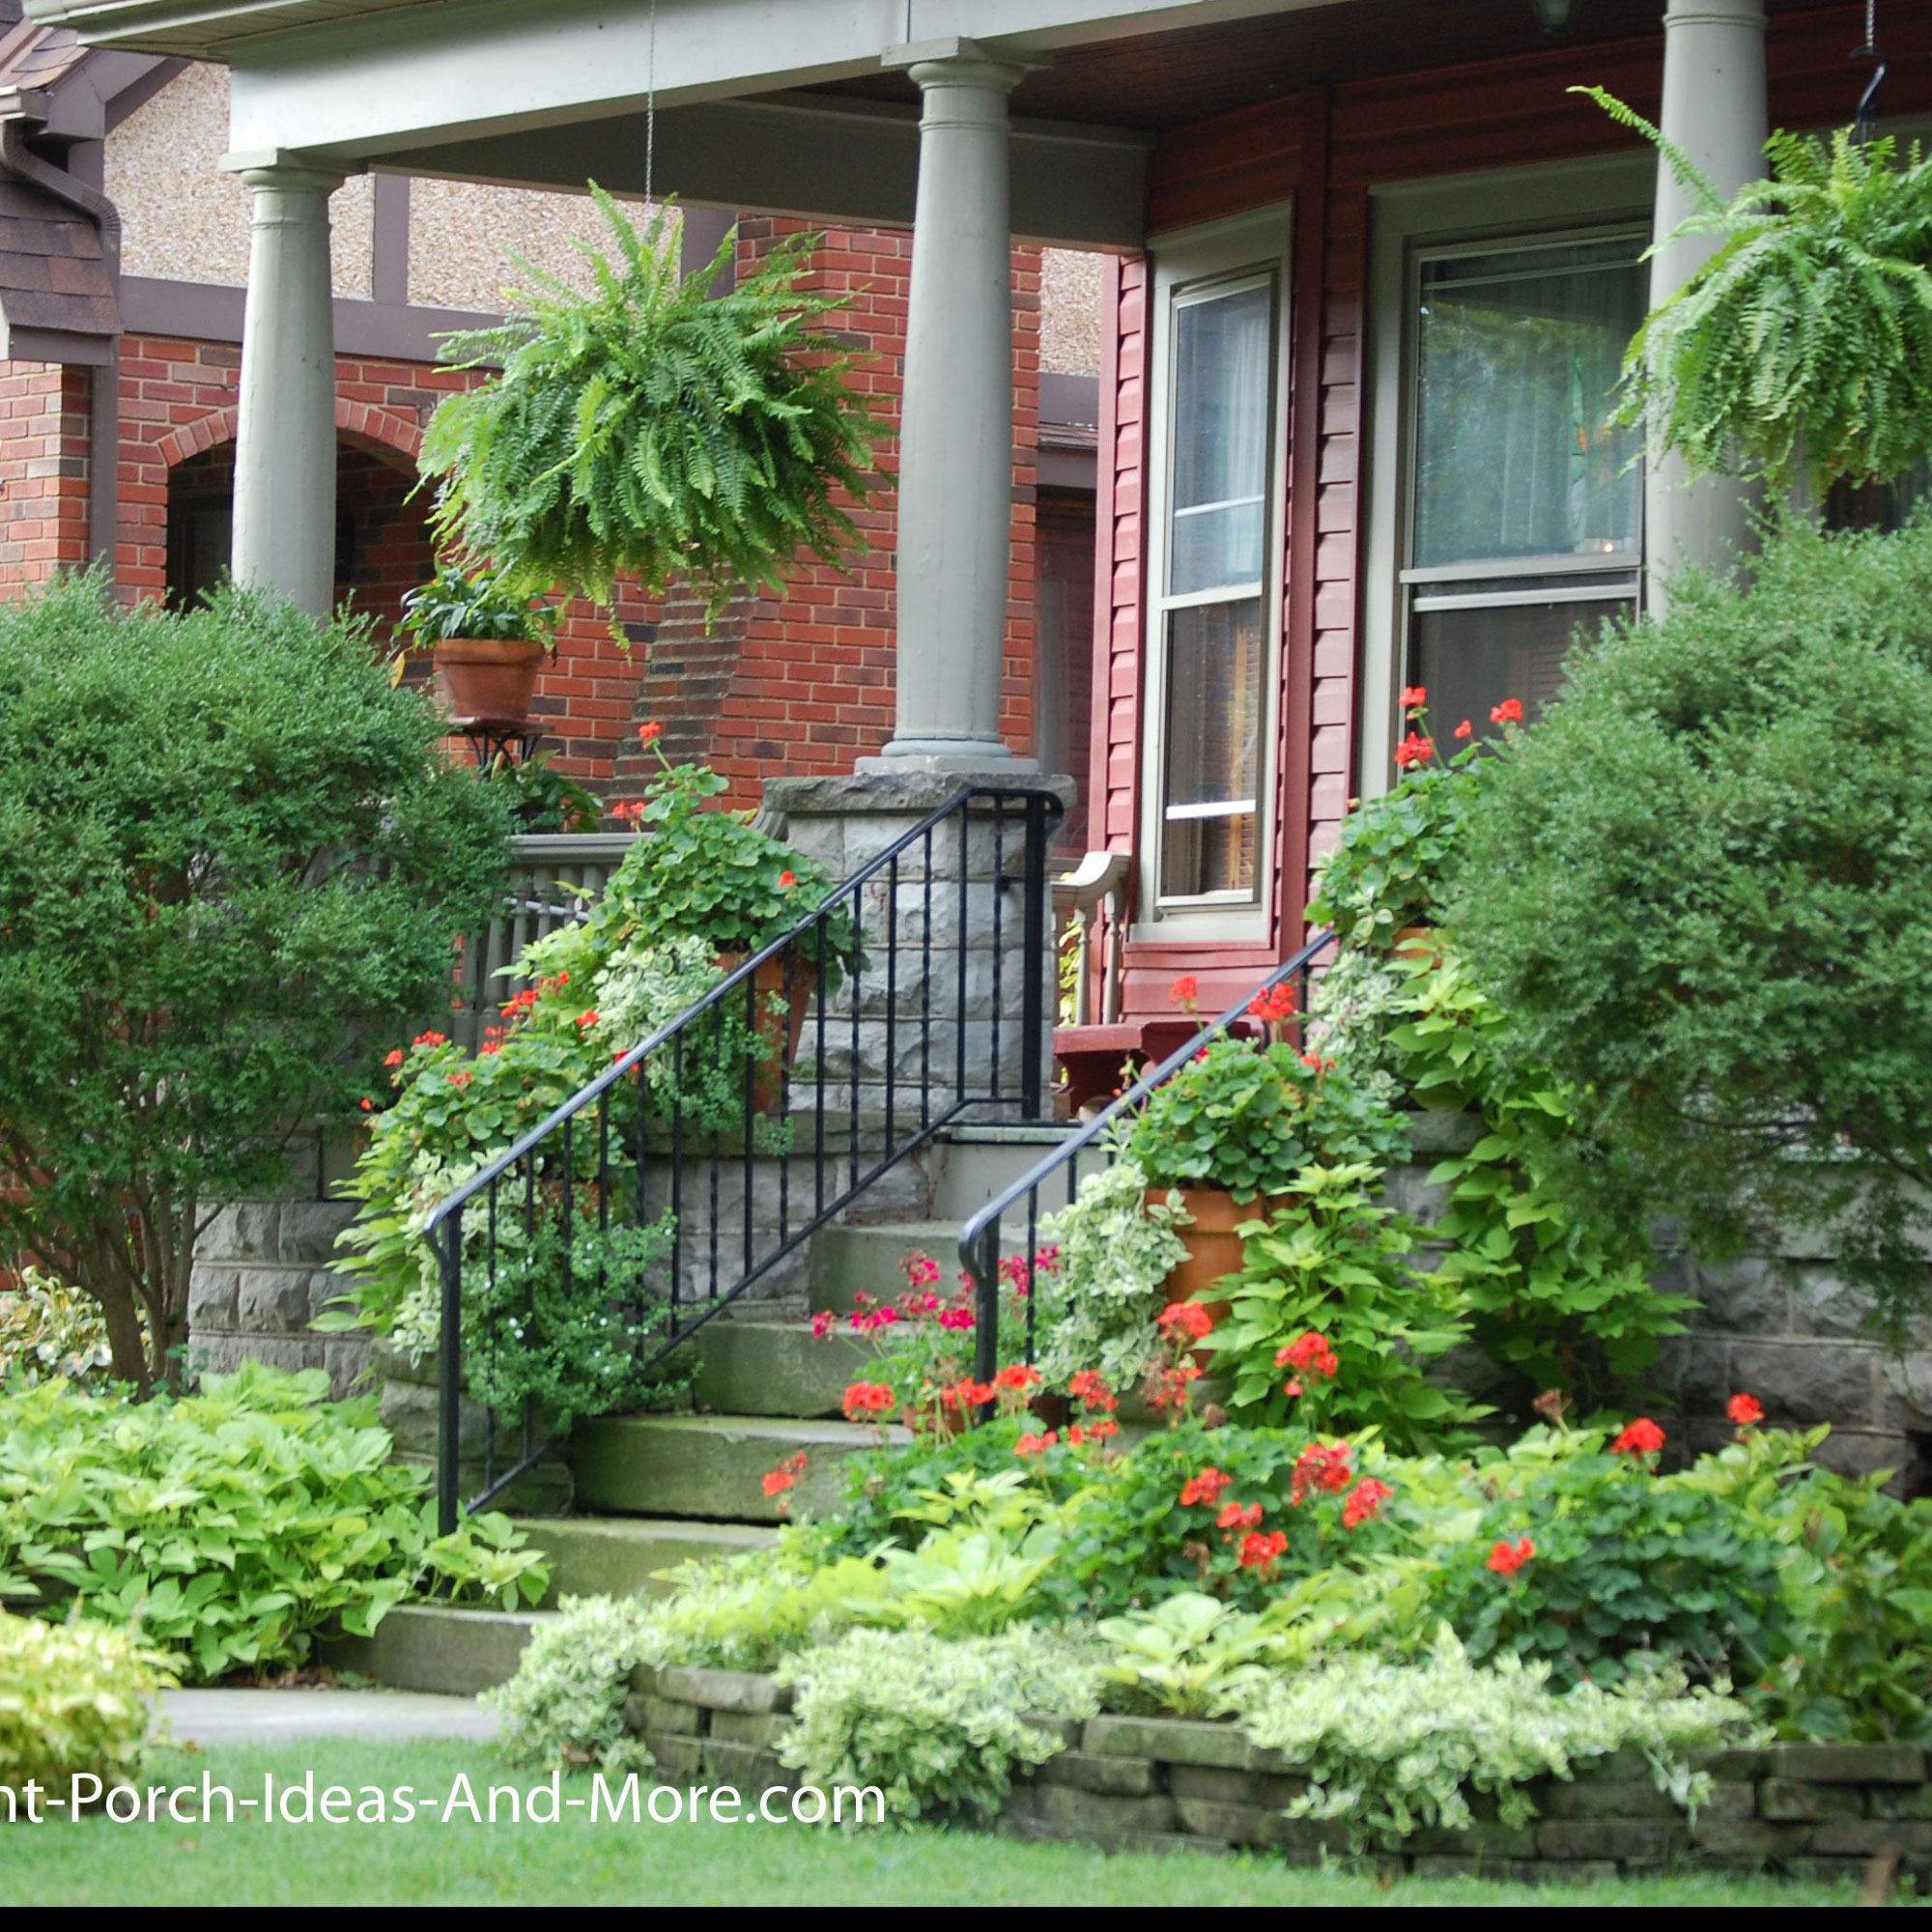 Front House Landscape Design Ideas: Porch Landscaping Ideas For Your Front Yard And More